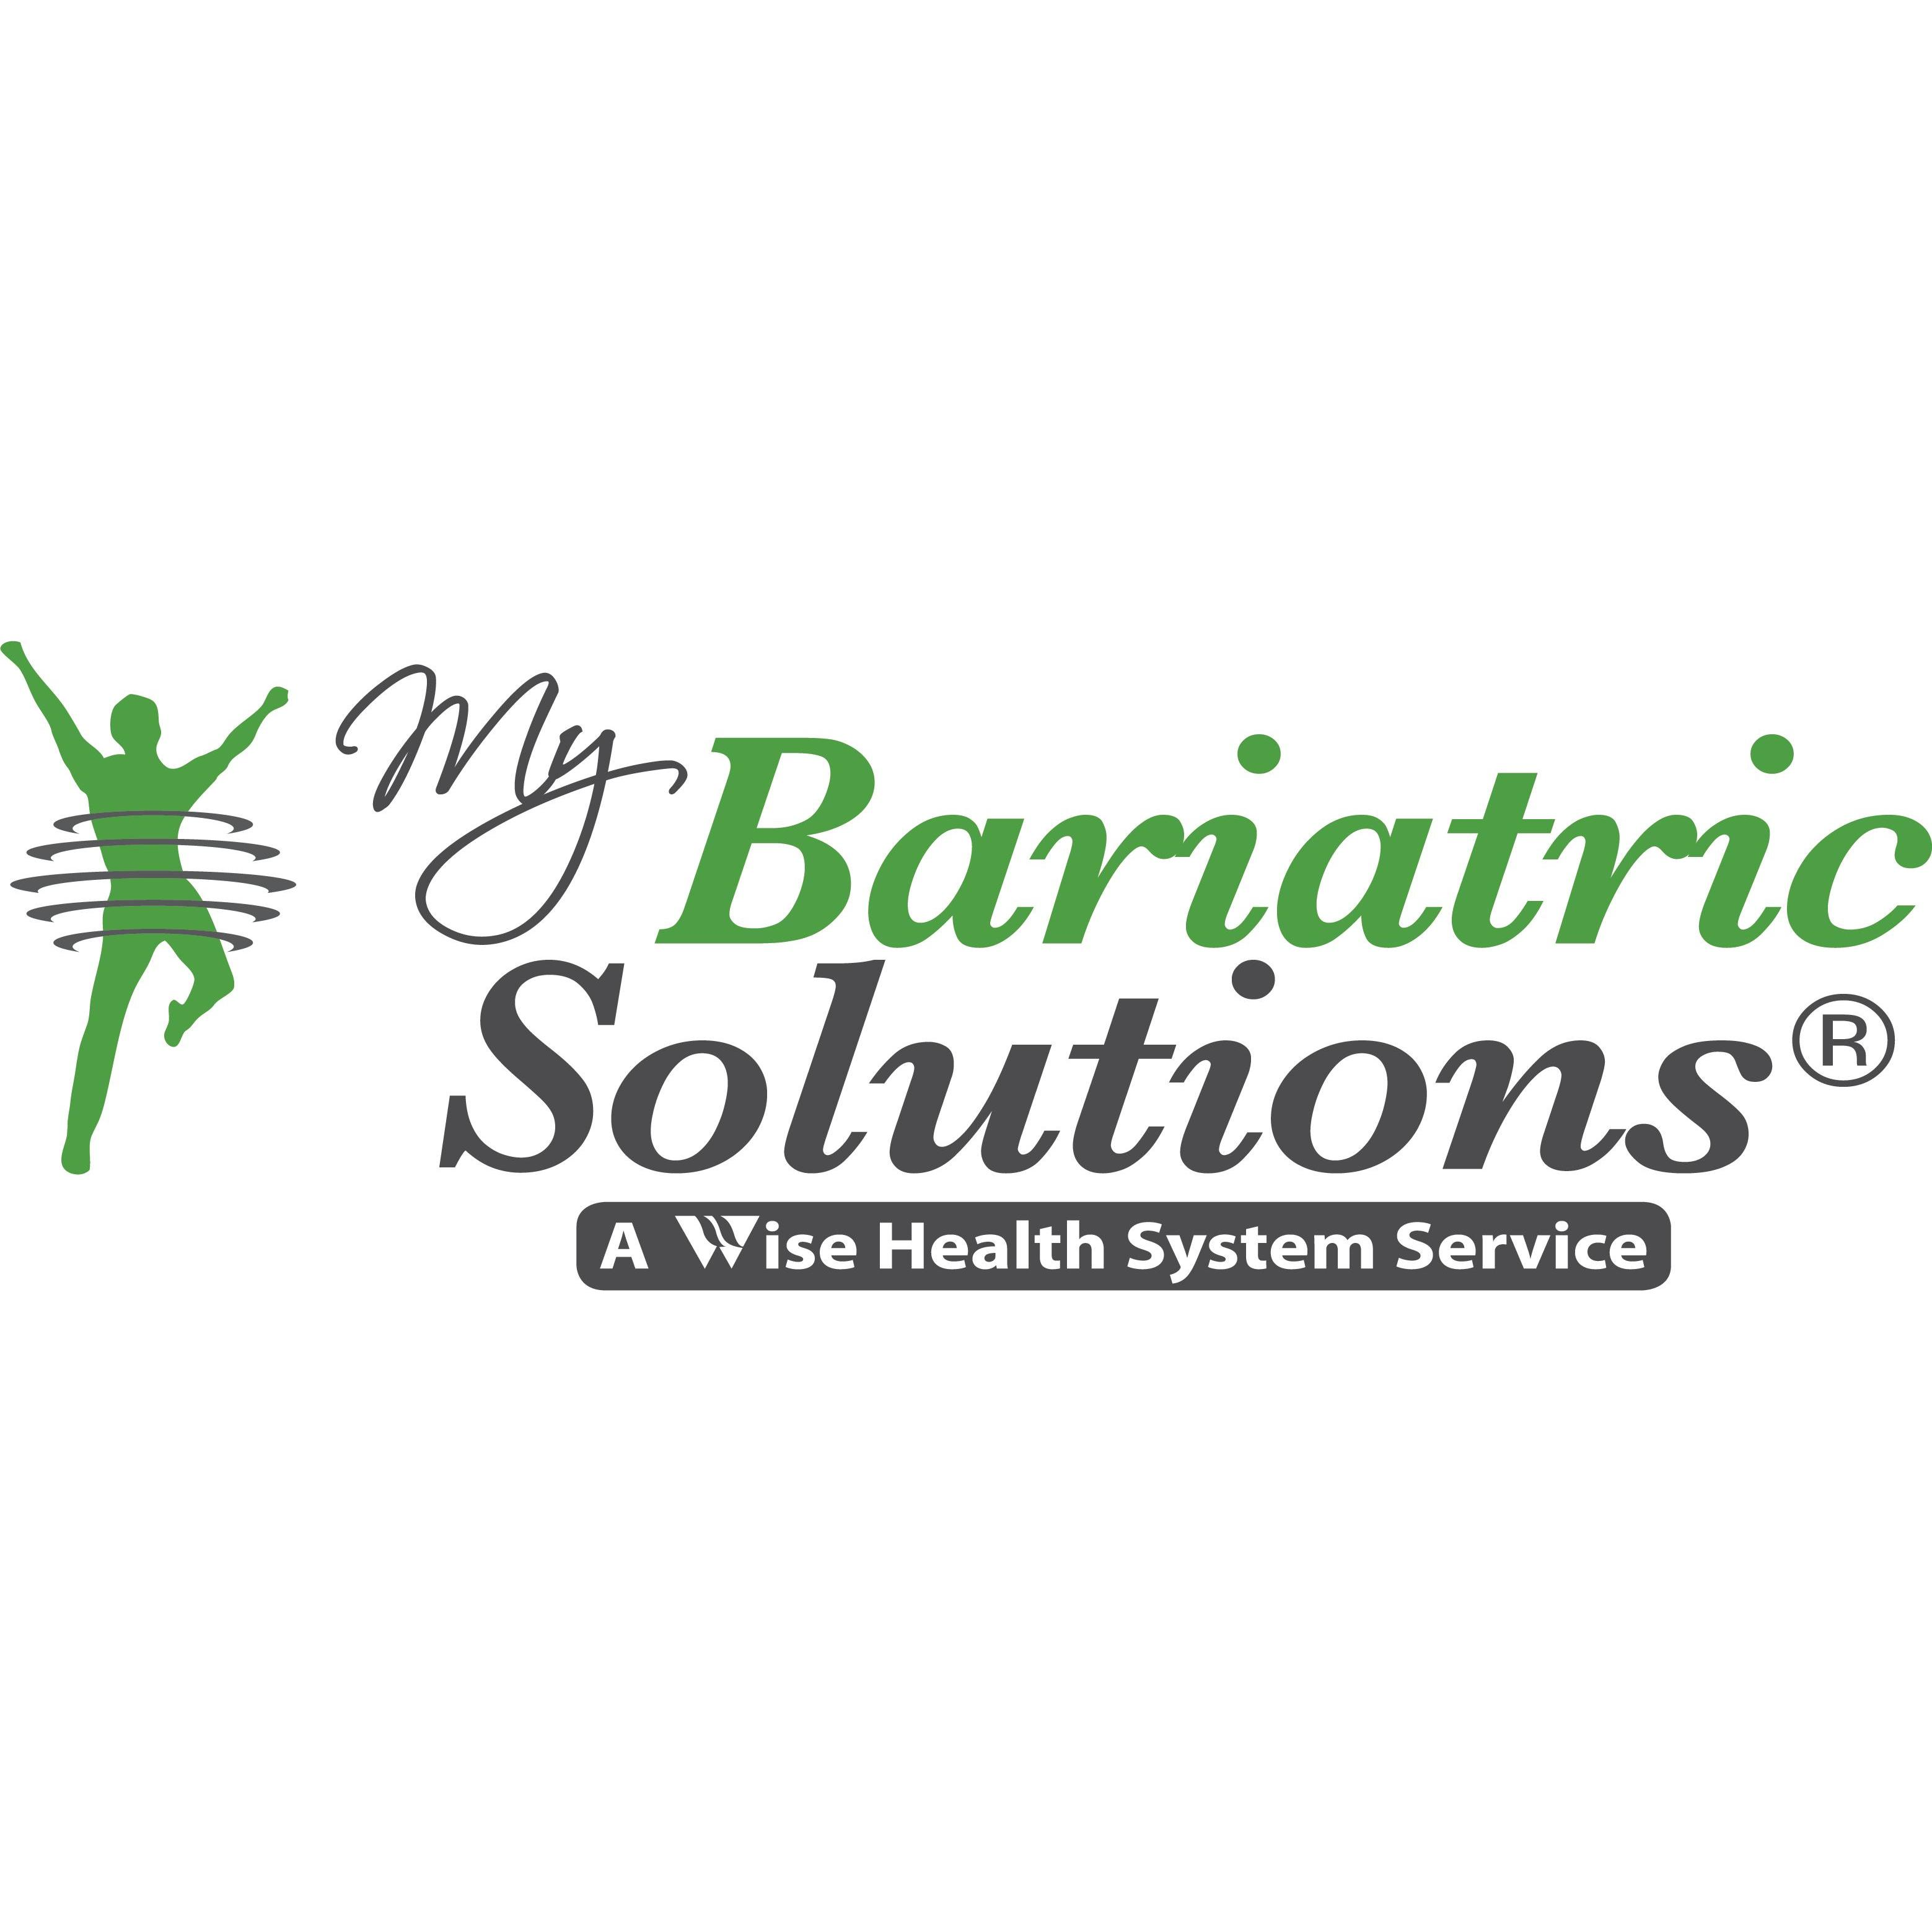 My Bariatric Solutions image 2